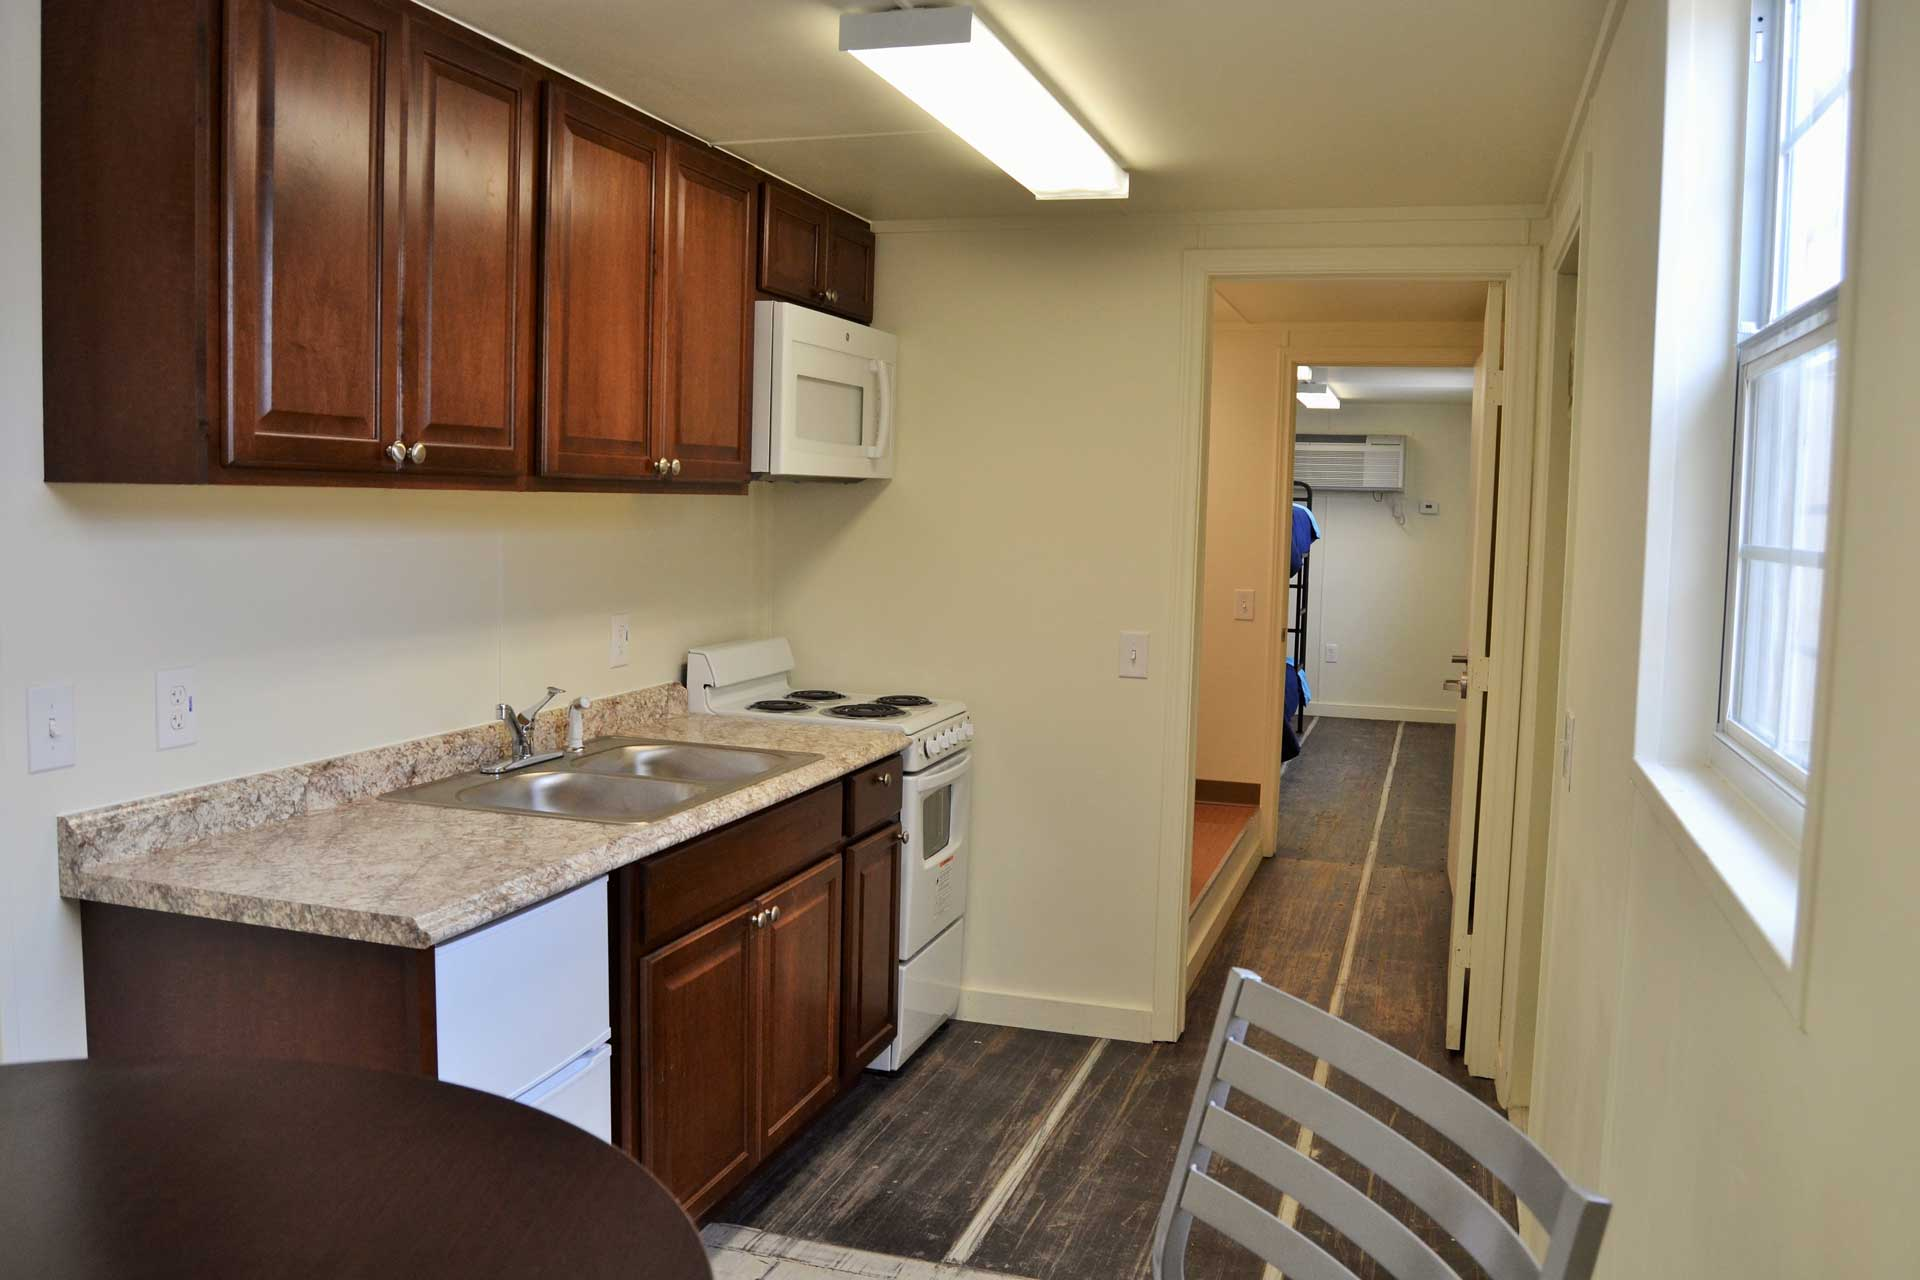 Border  Patrol housing kitchenette